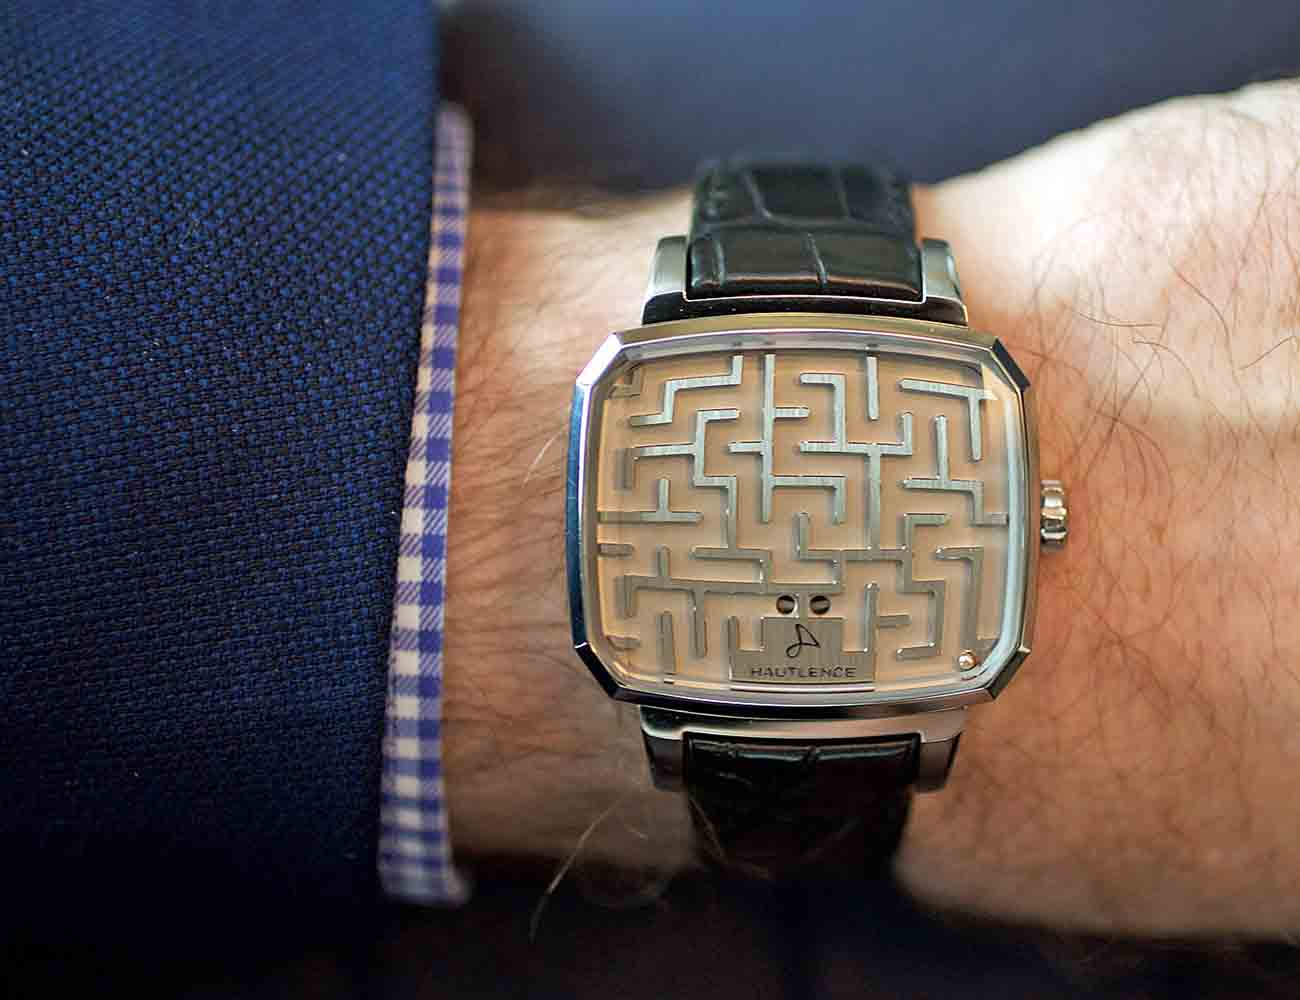 Labyrinth Maze Watch by Hautlence